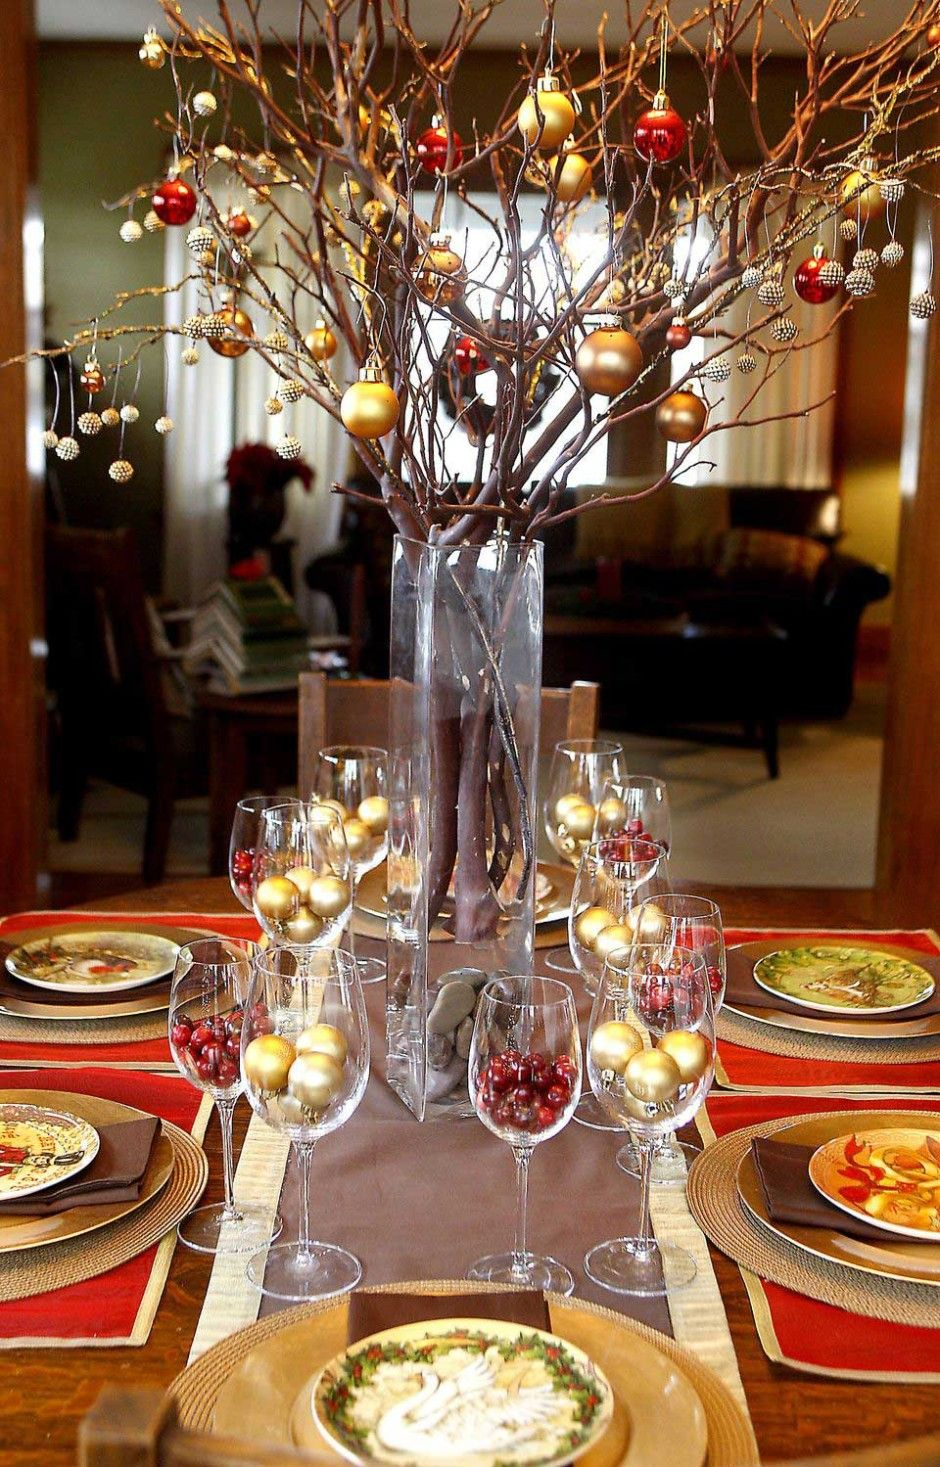 Luxury Christmas Party Centerpiece Idea With Gold Christmas Balls In The Glasses And Christmas Table Centerpieces Christmas Table Settings Diy Christmas Table